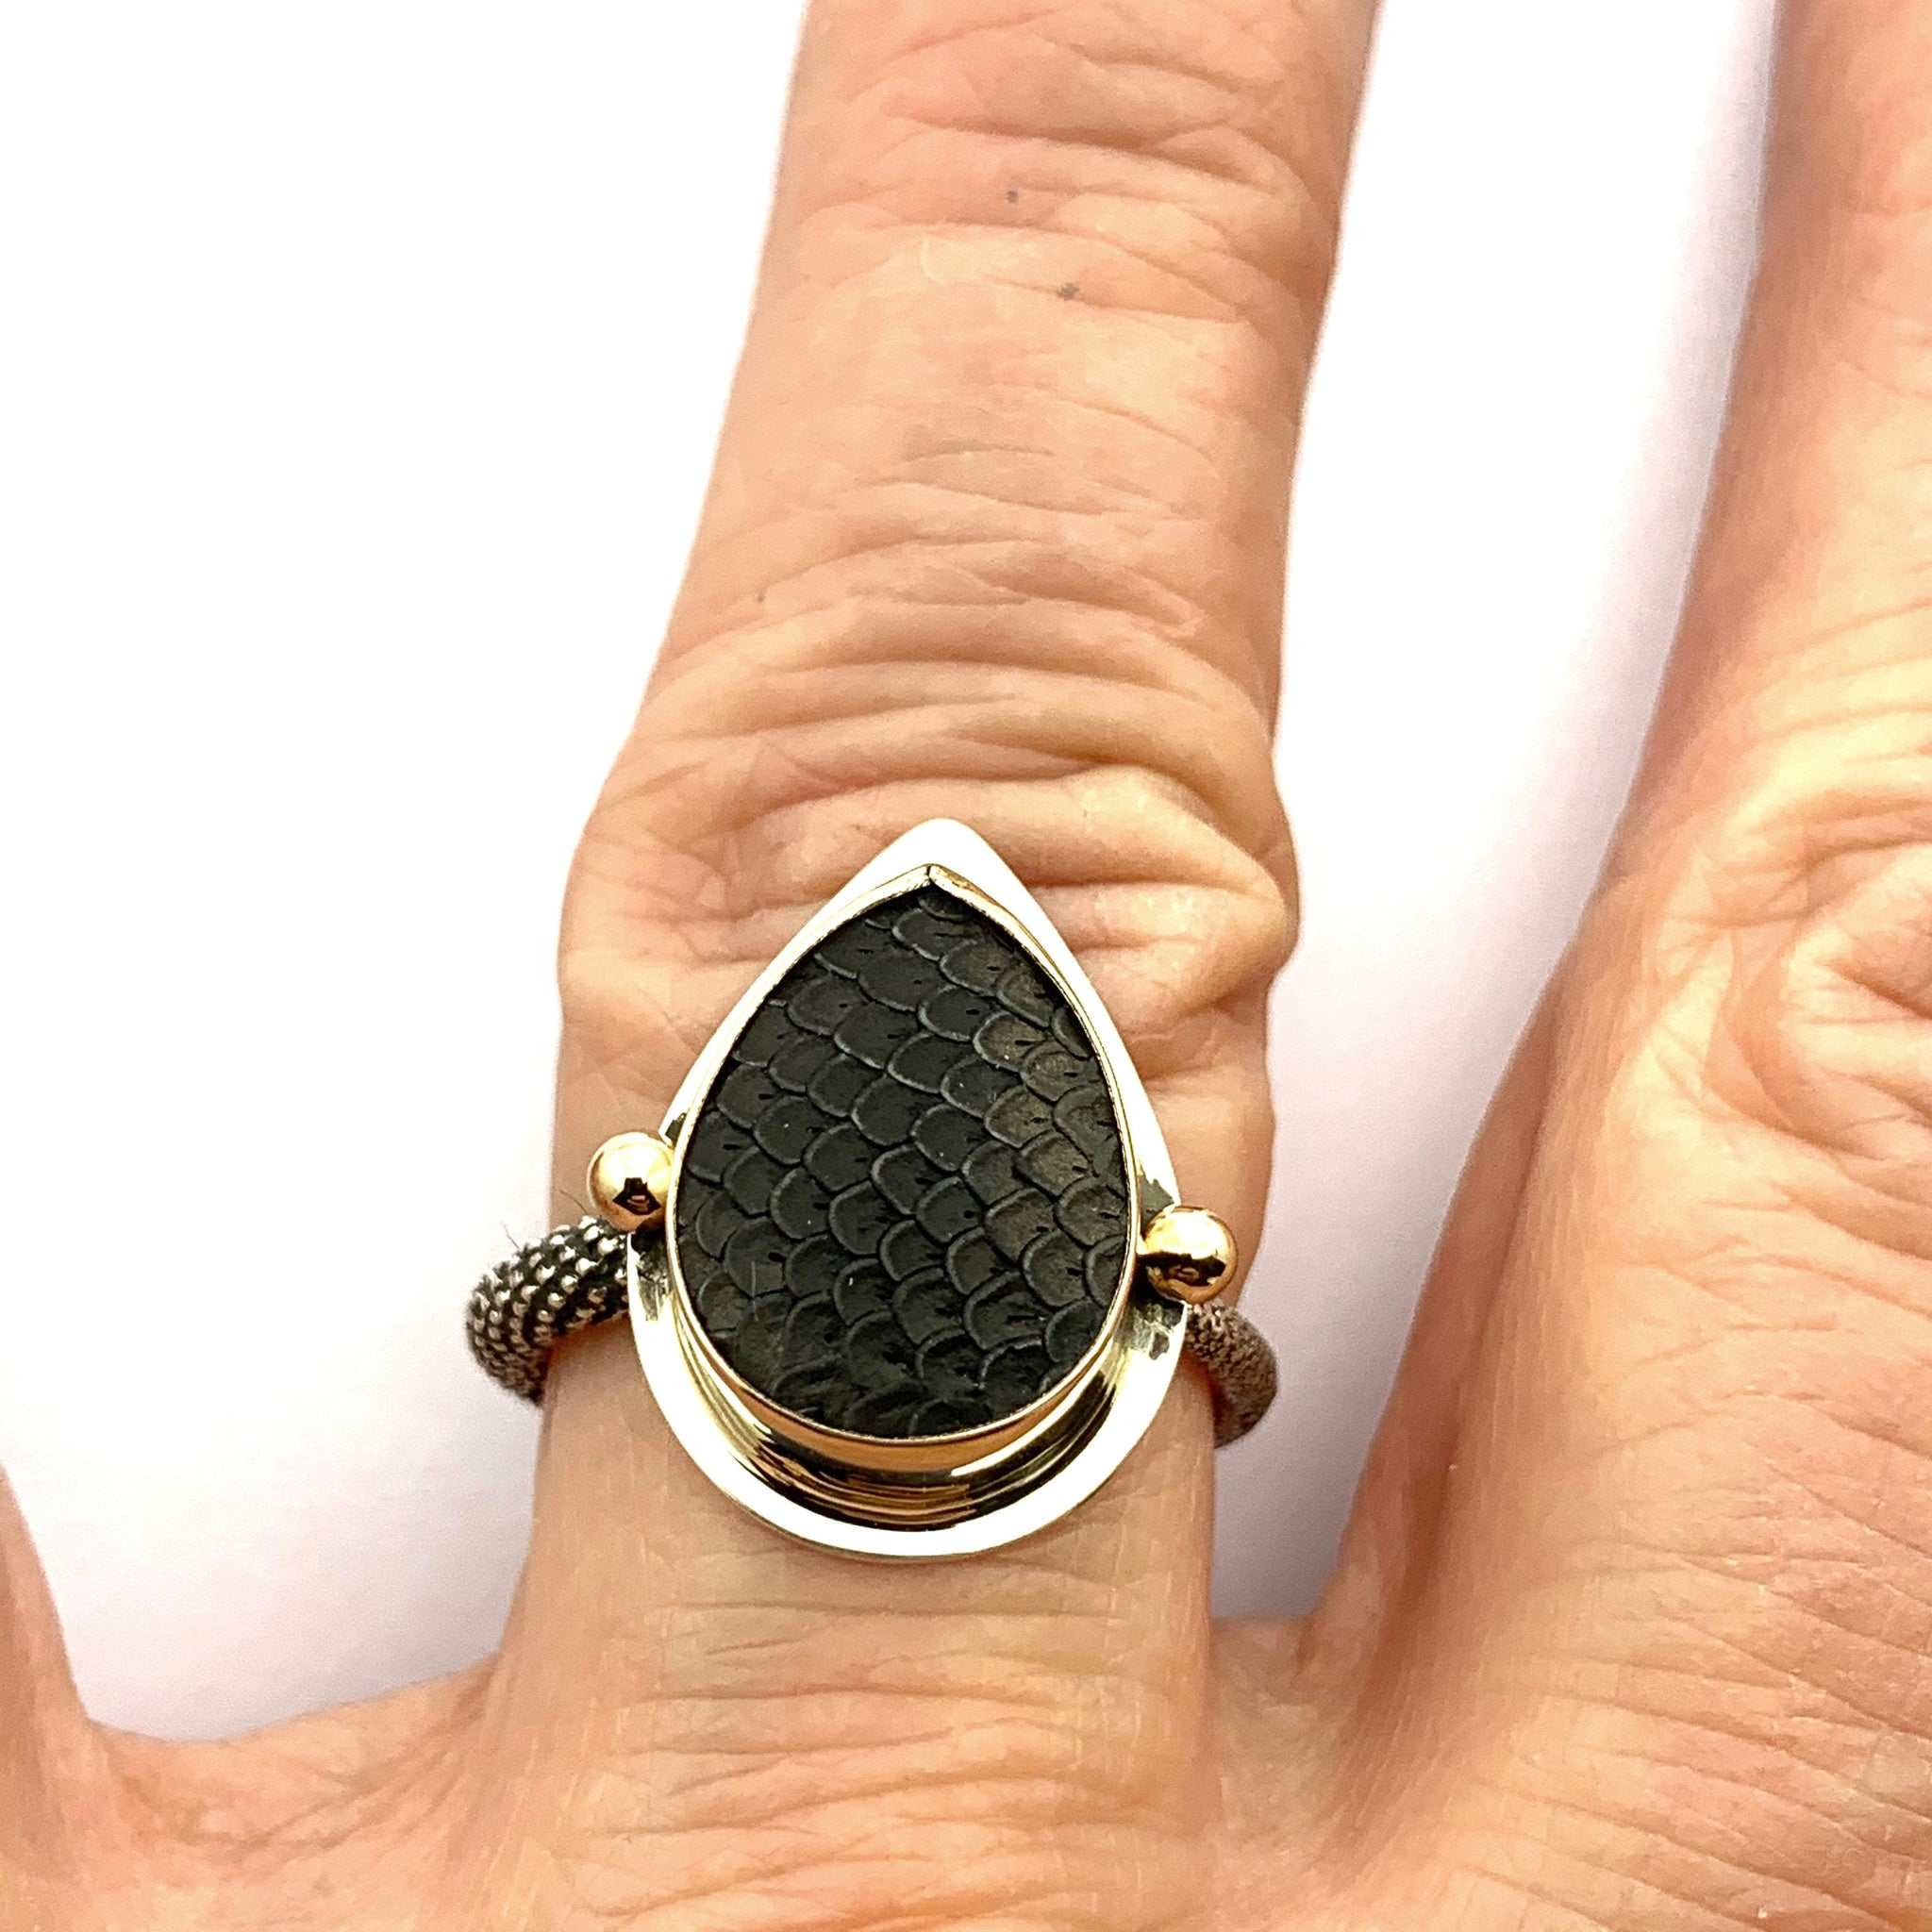 Snakeskin Agate Ring, Gold Ring, OOAK 14K ring, Statement Ring in 14k and Sterling Silver